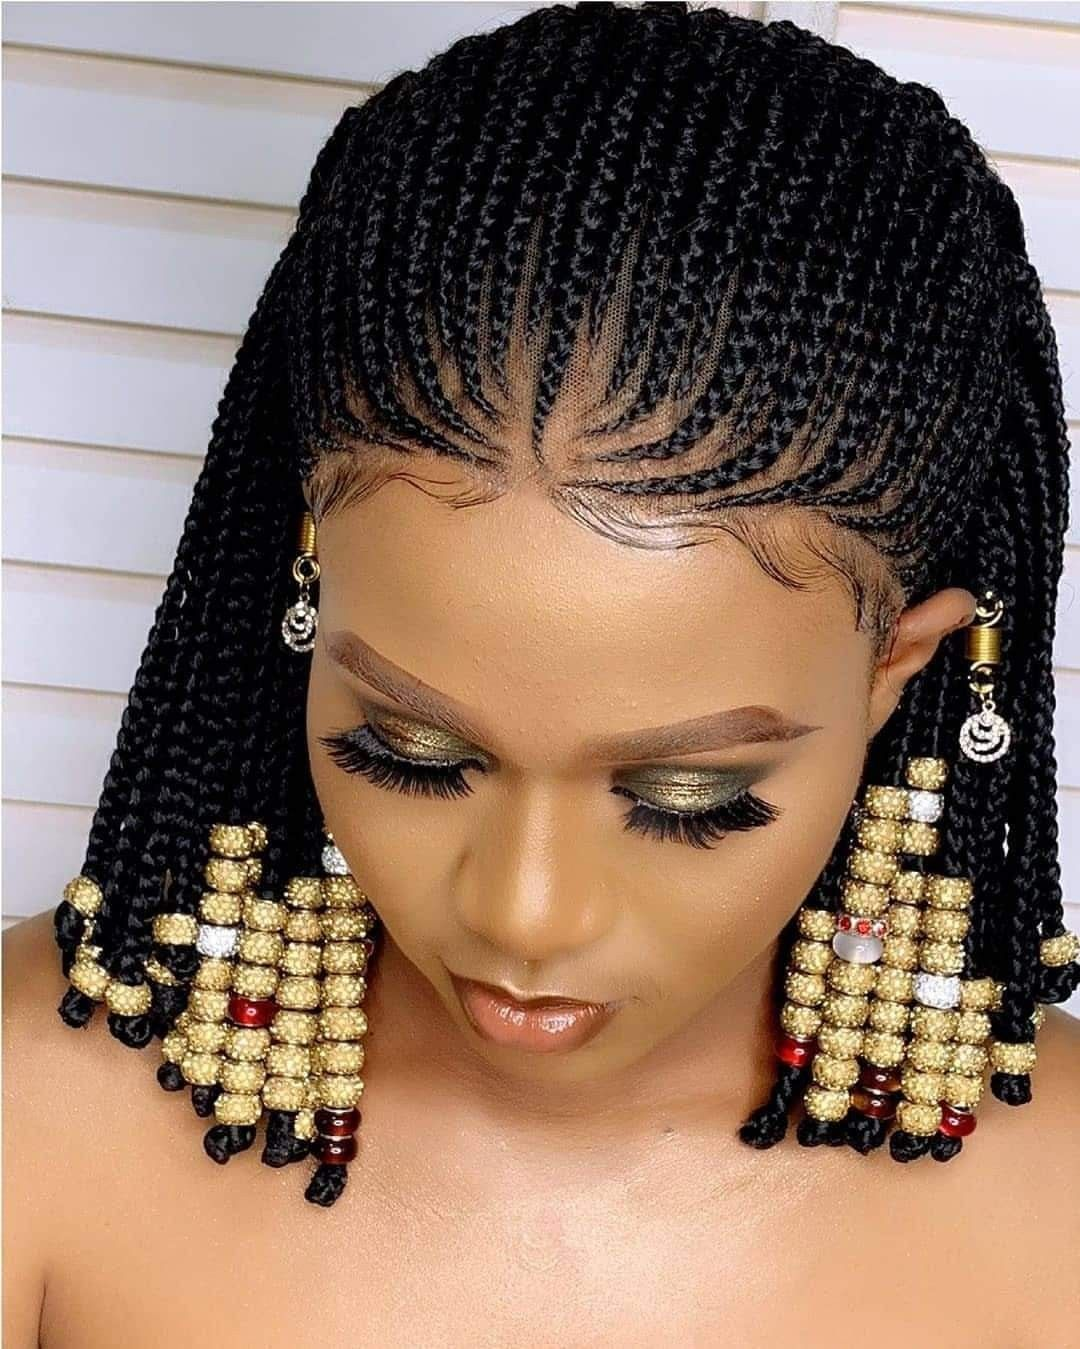 Pin By Merry Loum On Tresses Africaines Braided Hairstyles African Hair Braiding Styles Short Hair Styles